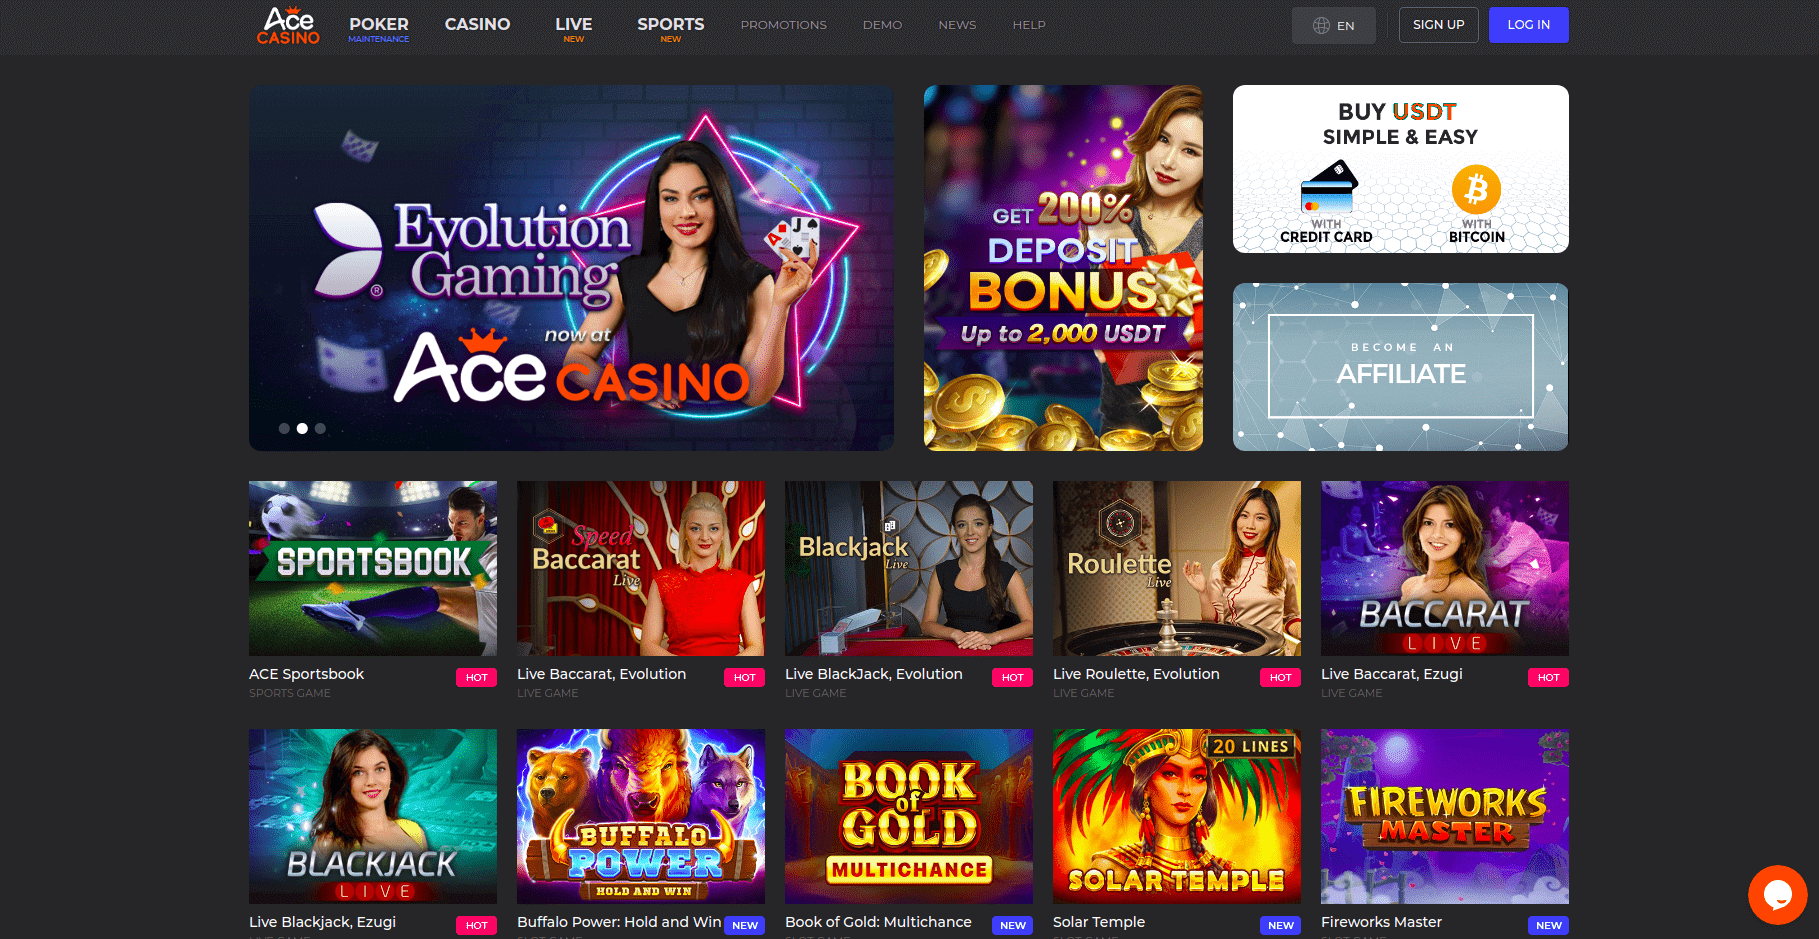 Ace Casino Home Page